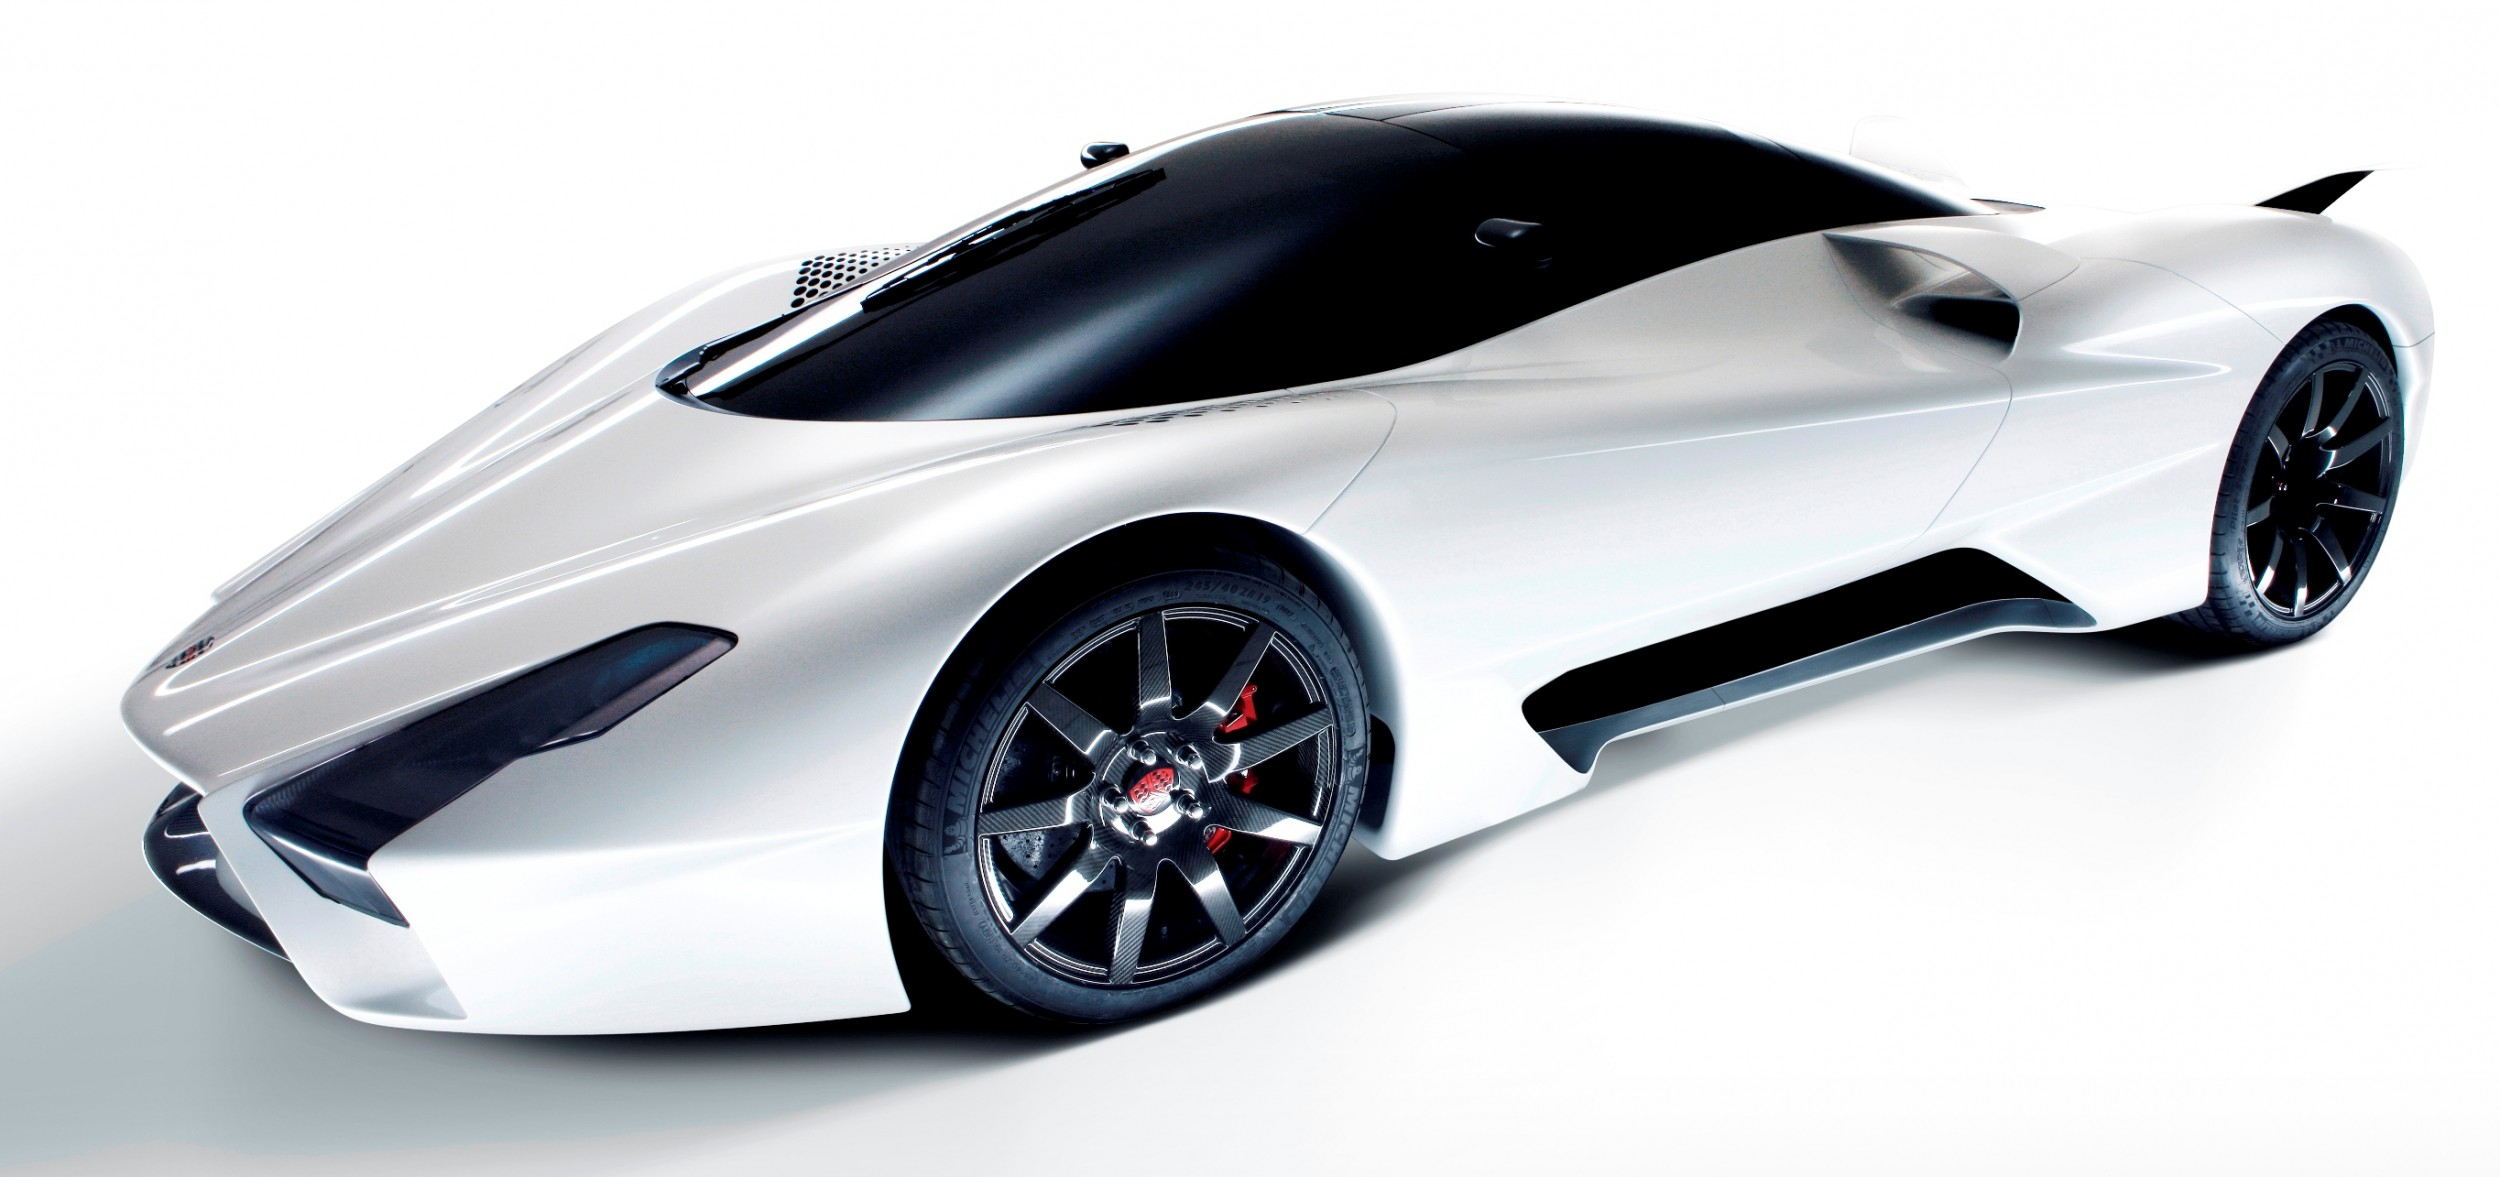 1350hp ssc tuatara delayed indefinitely 1350hp ssc tuatara delayed perhaps indefinitely as company goes radio silent since sept sciox Image collections